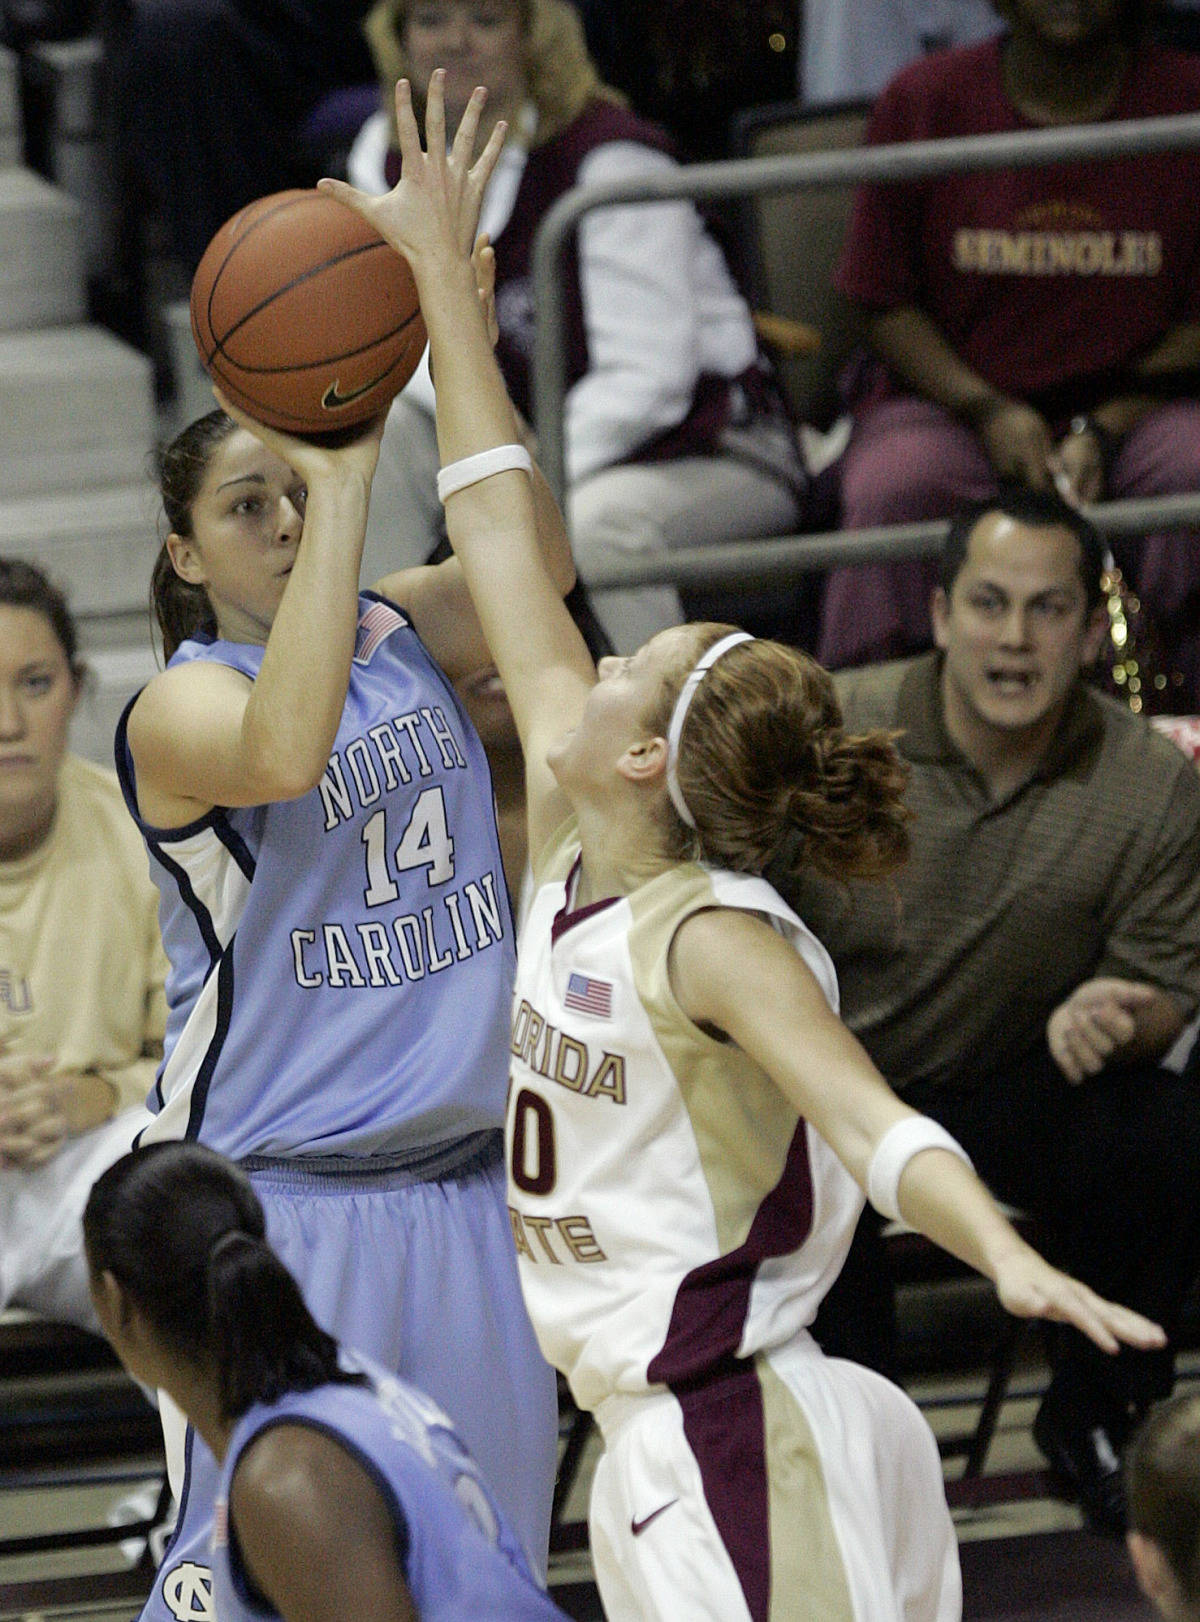 North Carolina's Heather Claytor (14) shoots a three over Florida State's Mara Freshour in the first half of a college basketball game on Monday, Feb. 12, 2007 in Tallahassee, Fla. (AP Photo/Steve Cannon)